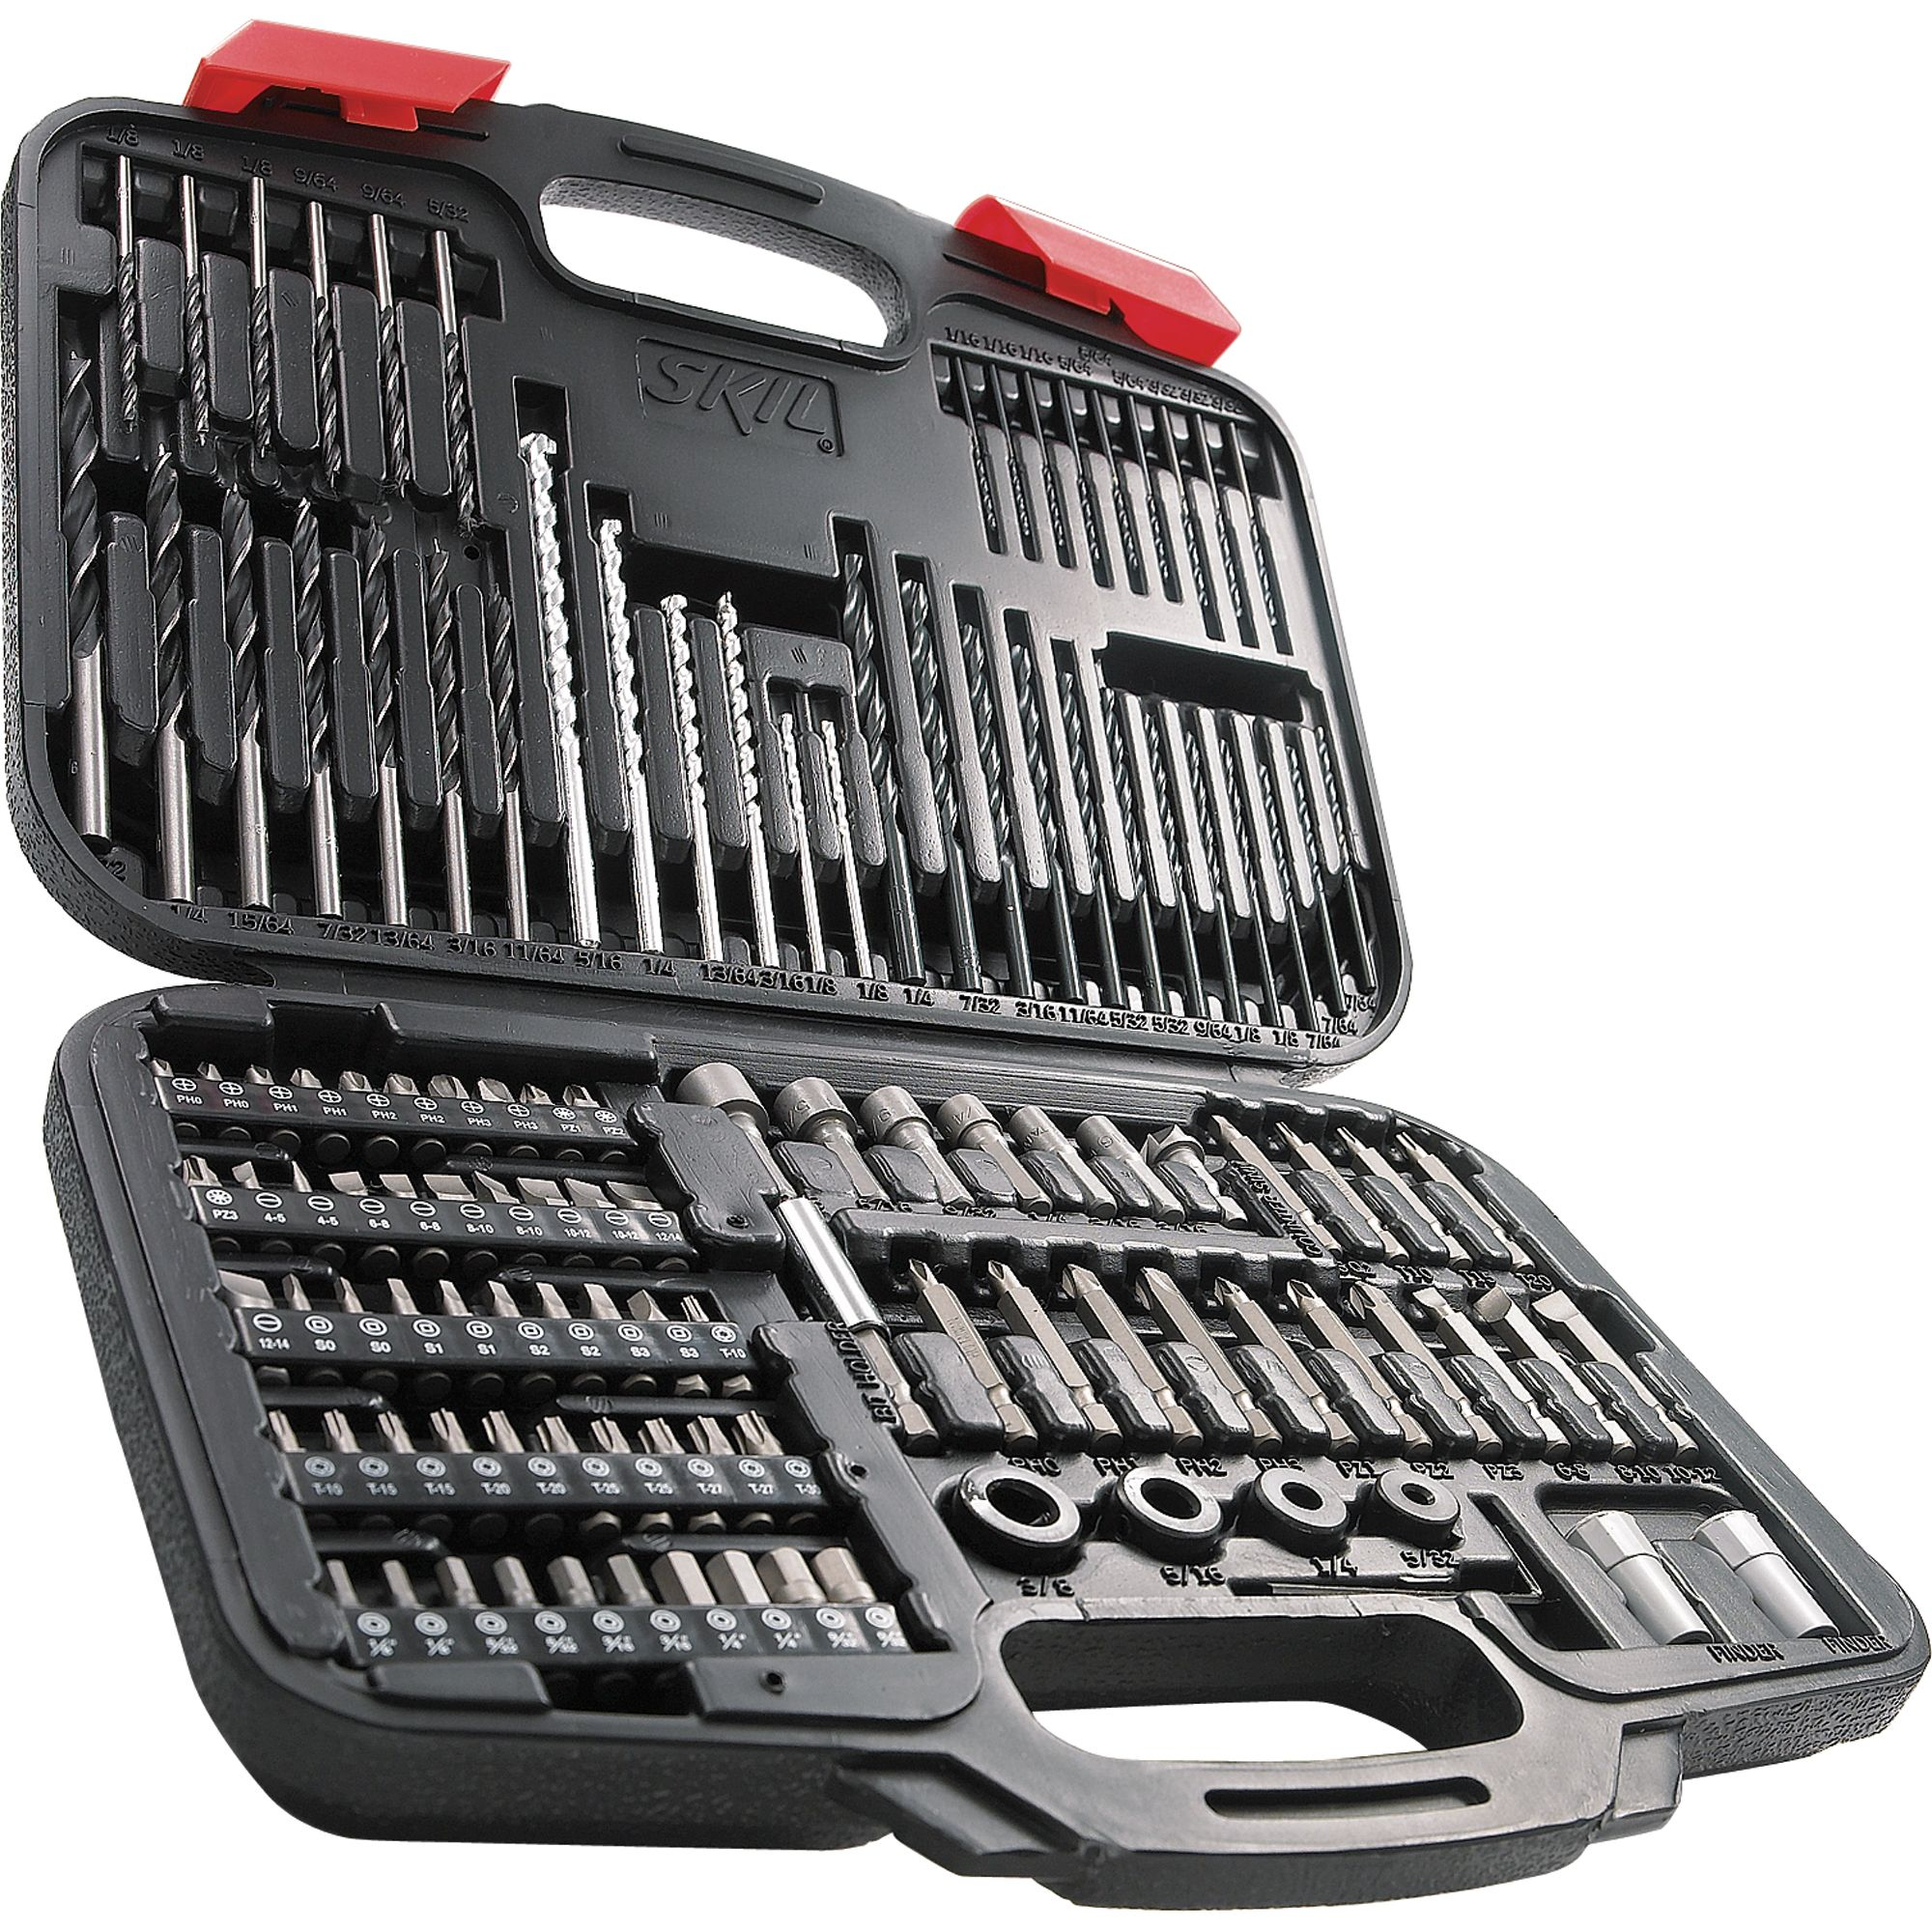 119-piece Drill and Drive Set